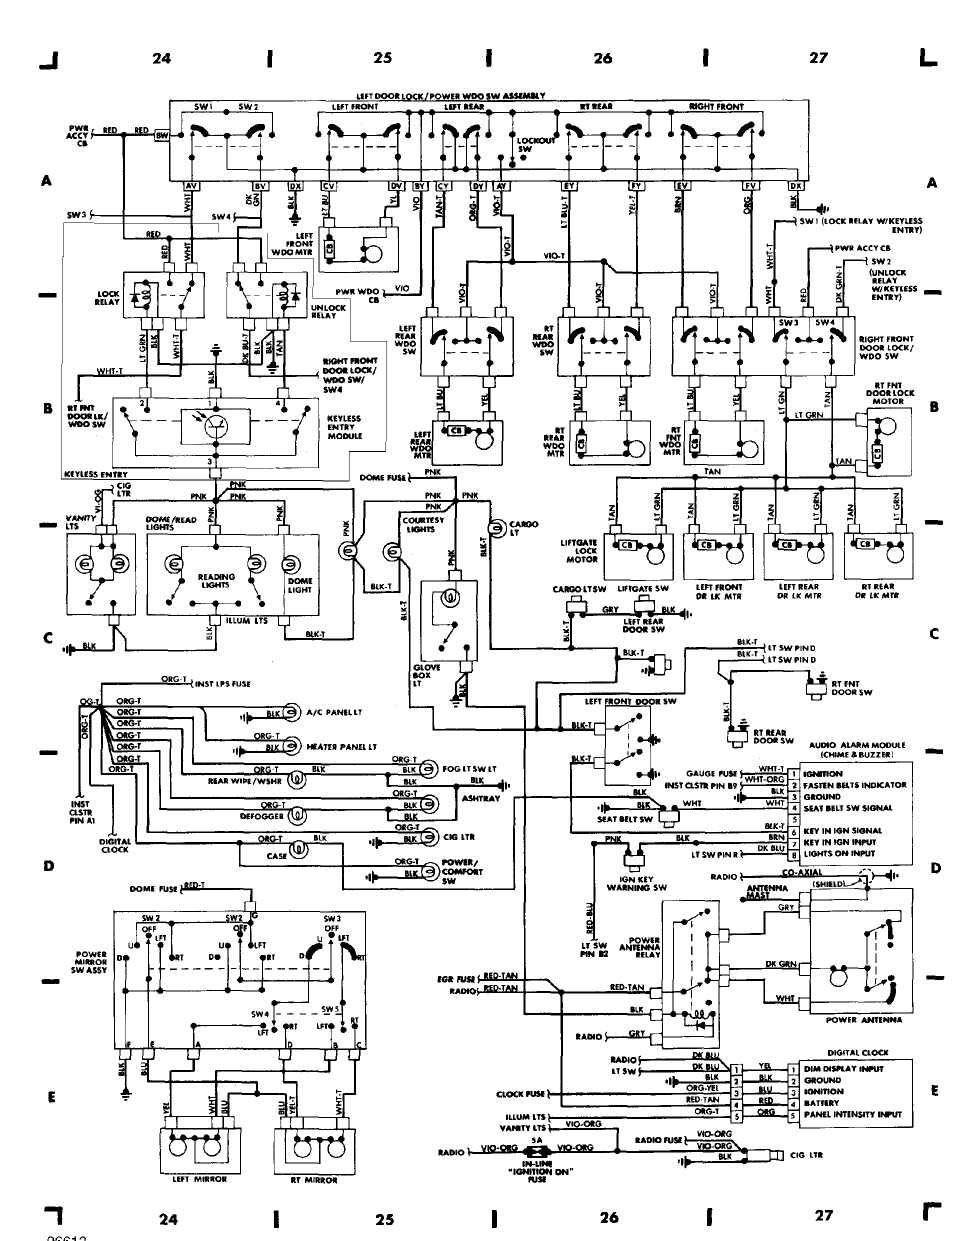 wiring_diagrams_html_61f5e0ad wiring diagrams 1984 1991 jeep cherokee (xj) jeep 1990 jeep wrangler fuse box diagram at soozxer.org